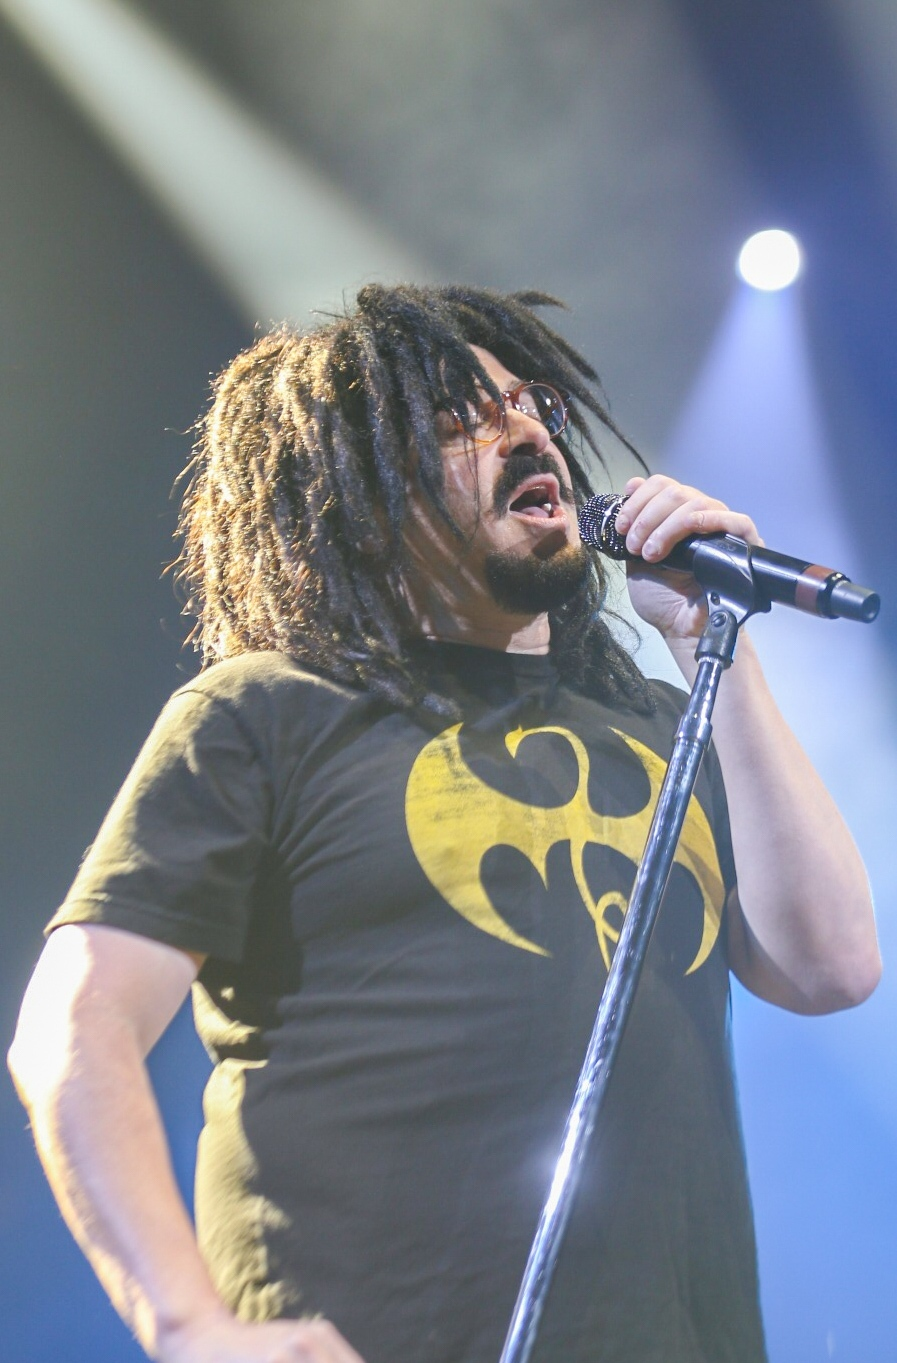 Counting Crows frontman Adam Duritz belts out a ballet at Vancouver's Rogers Arena on July 16, 2017. (Kenny Tai)